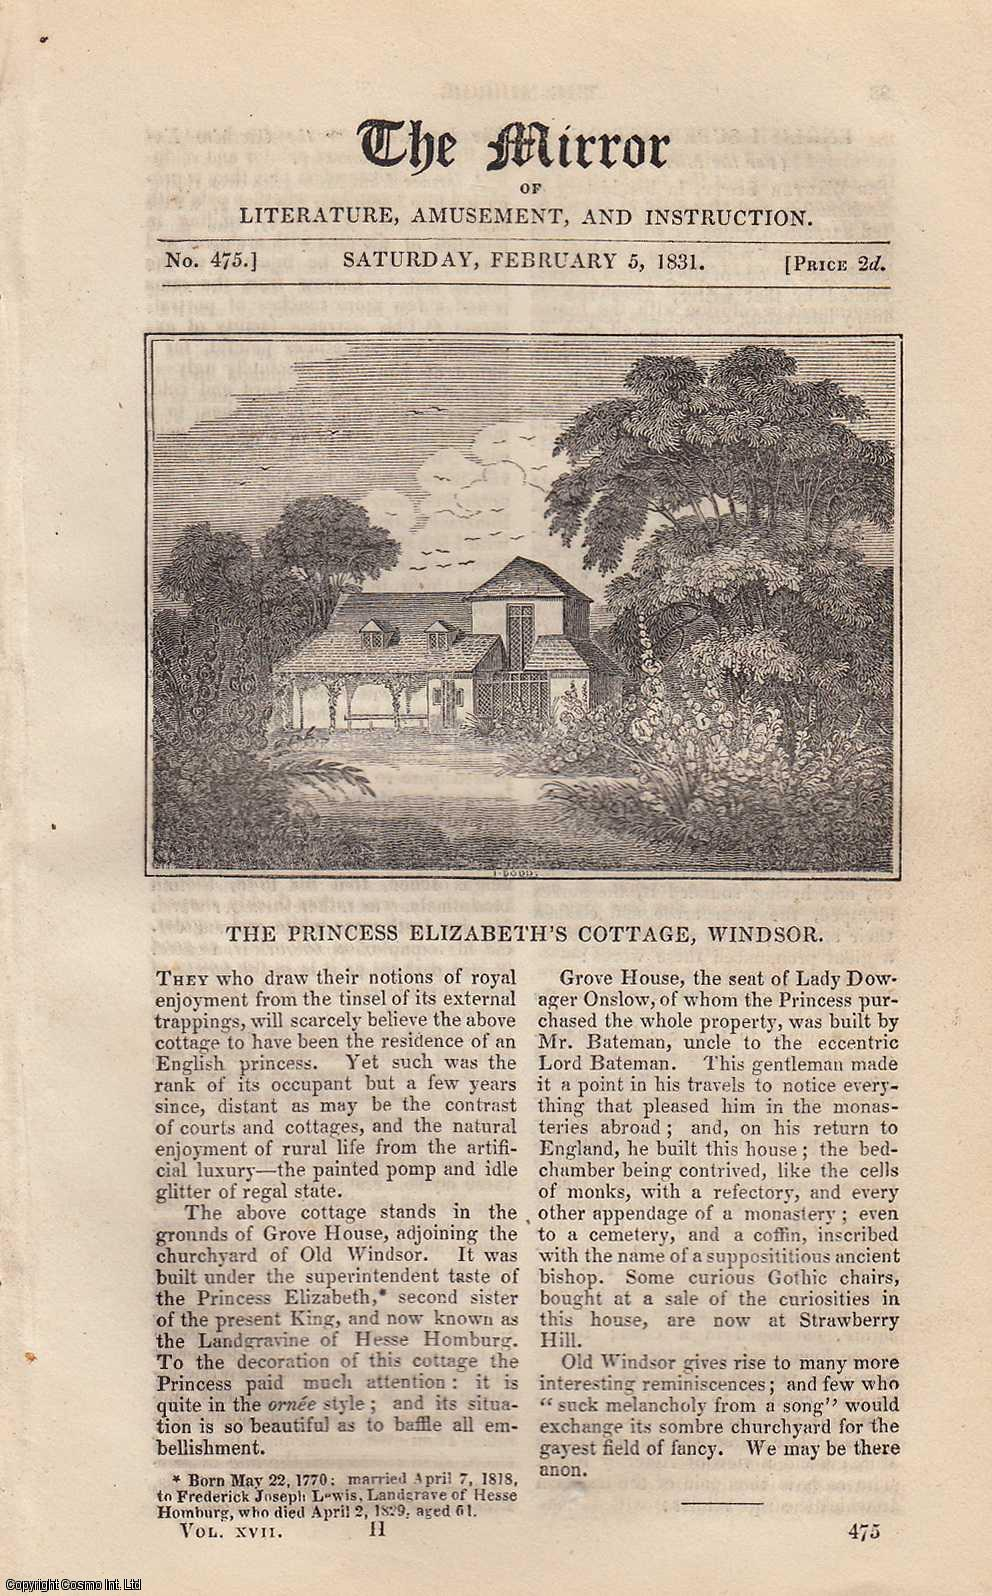 THE MIRROR - The Princess Elizabeth's Cottage, Windsor. A complete rare weekly issue of the Mirror of Literature, Amusement, and Instruction, 1831.